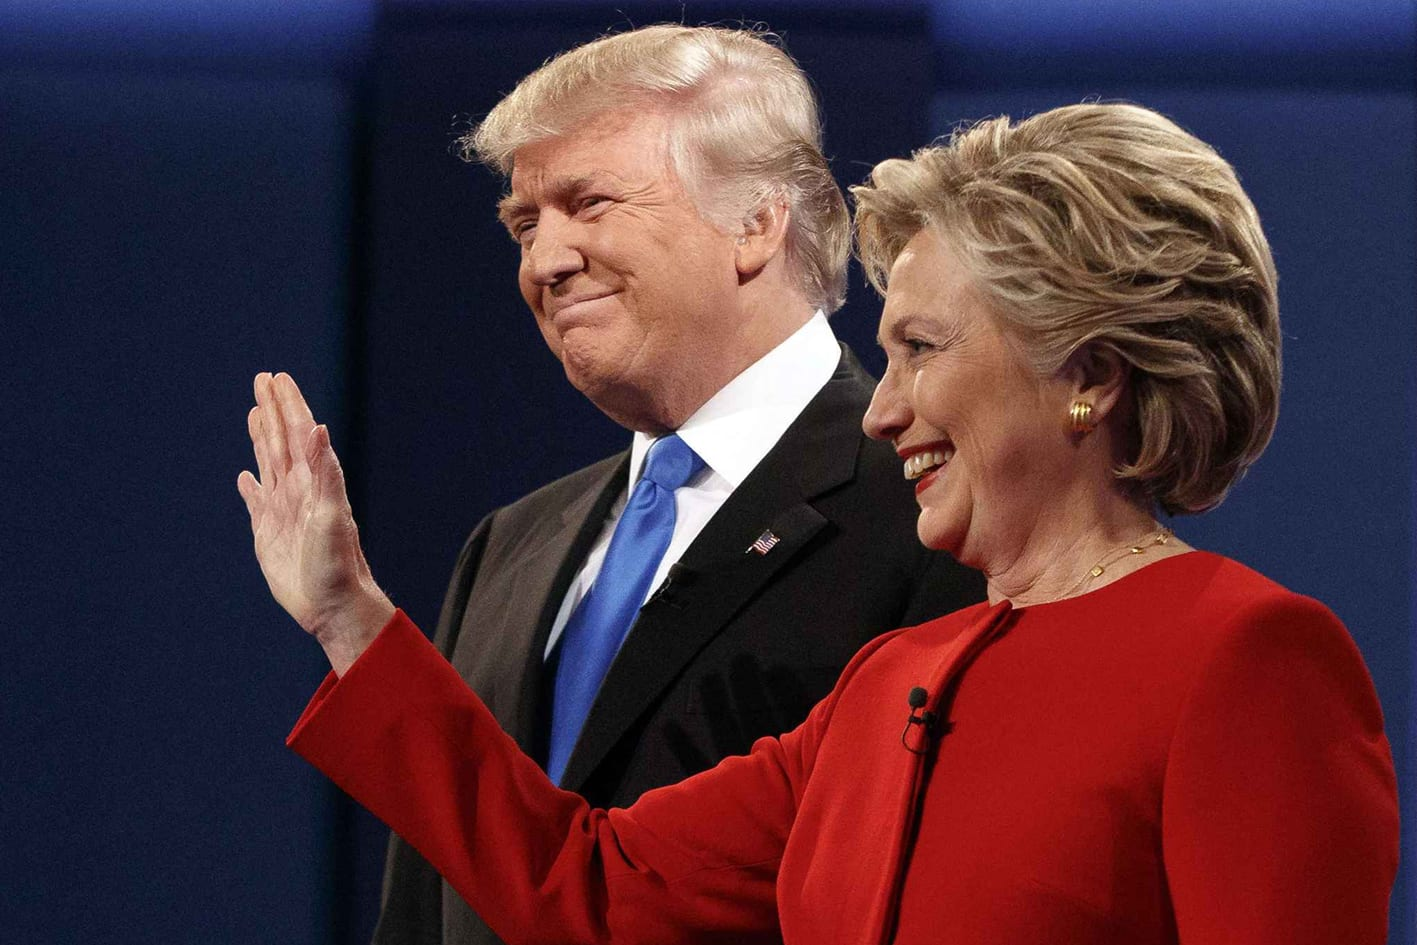 Trump Clinton Debate Antidote